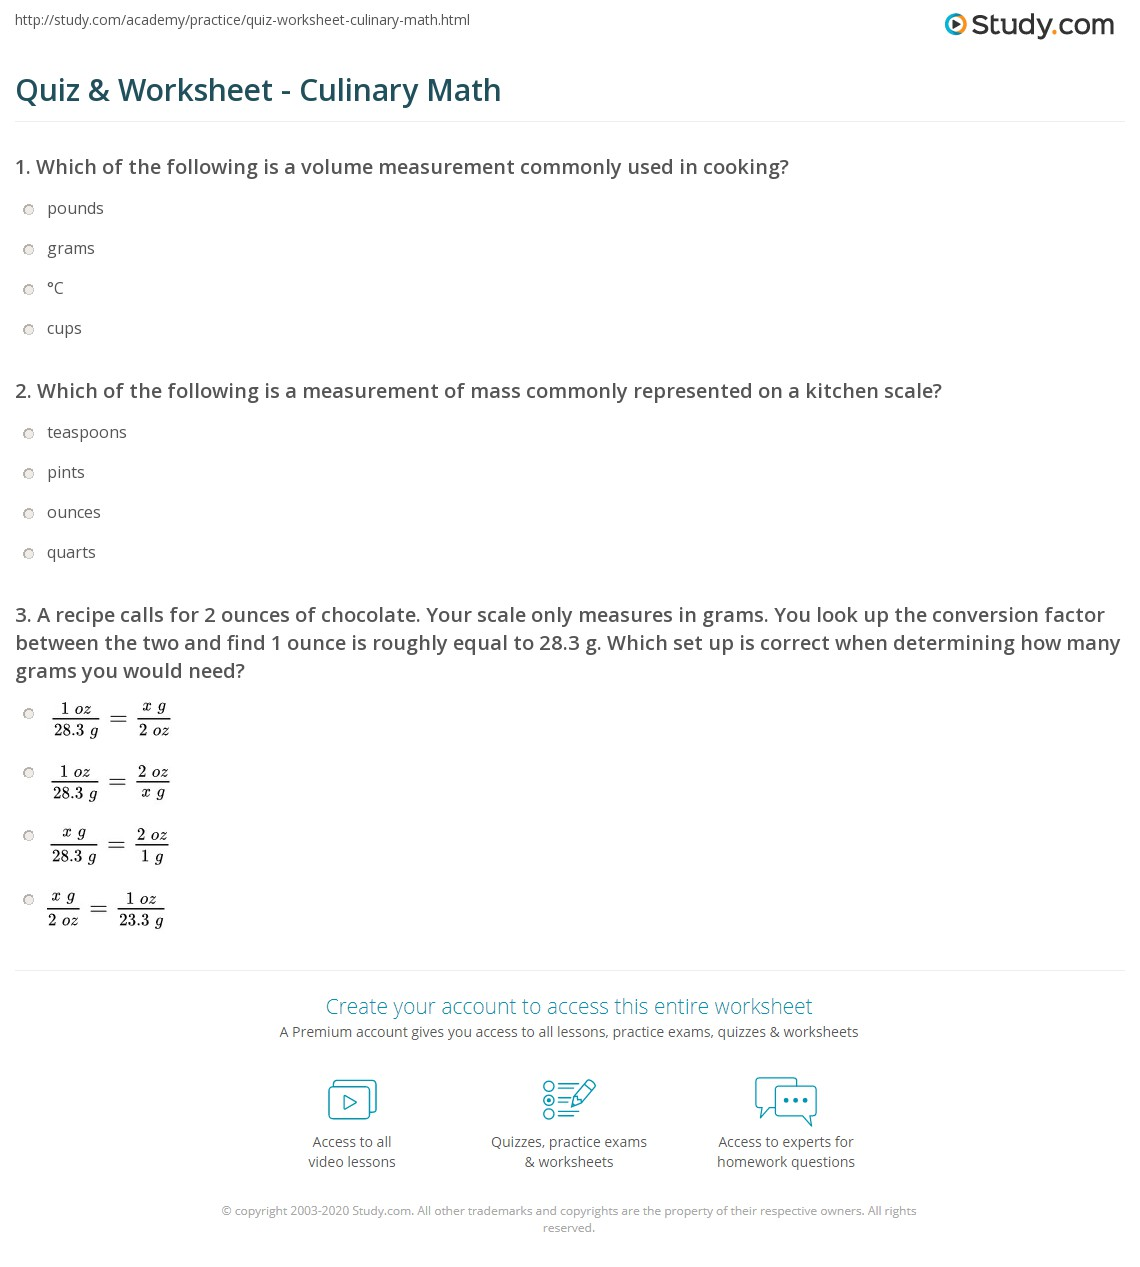 Worksheets Basic Cooking Terms Worksheet quiz worksheet culinary math study com print kitchen measuring conversions worksheet